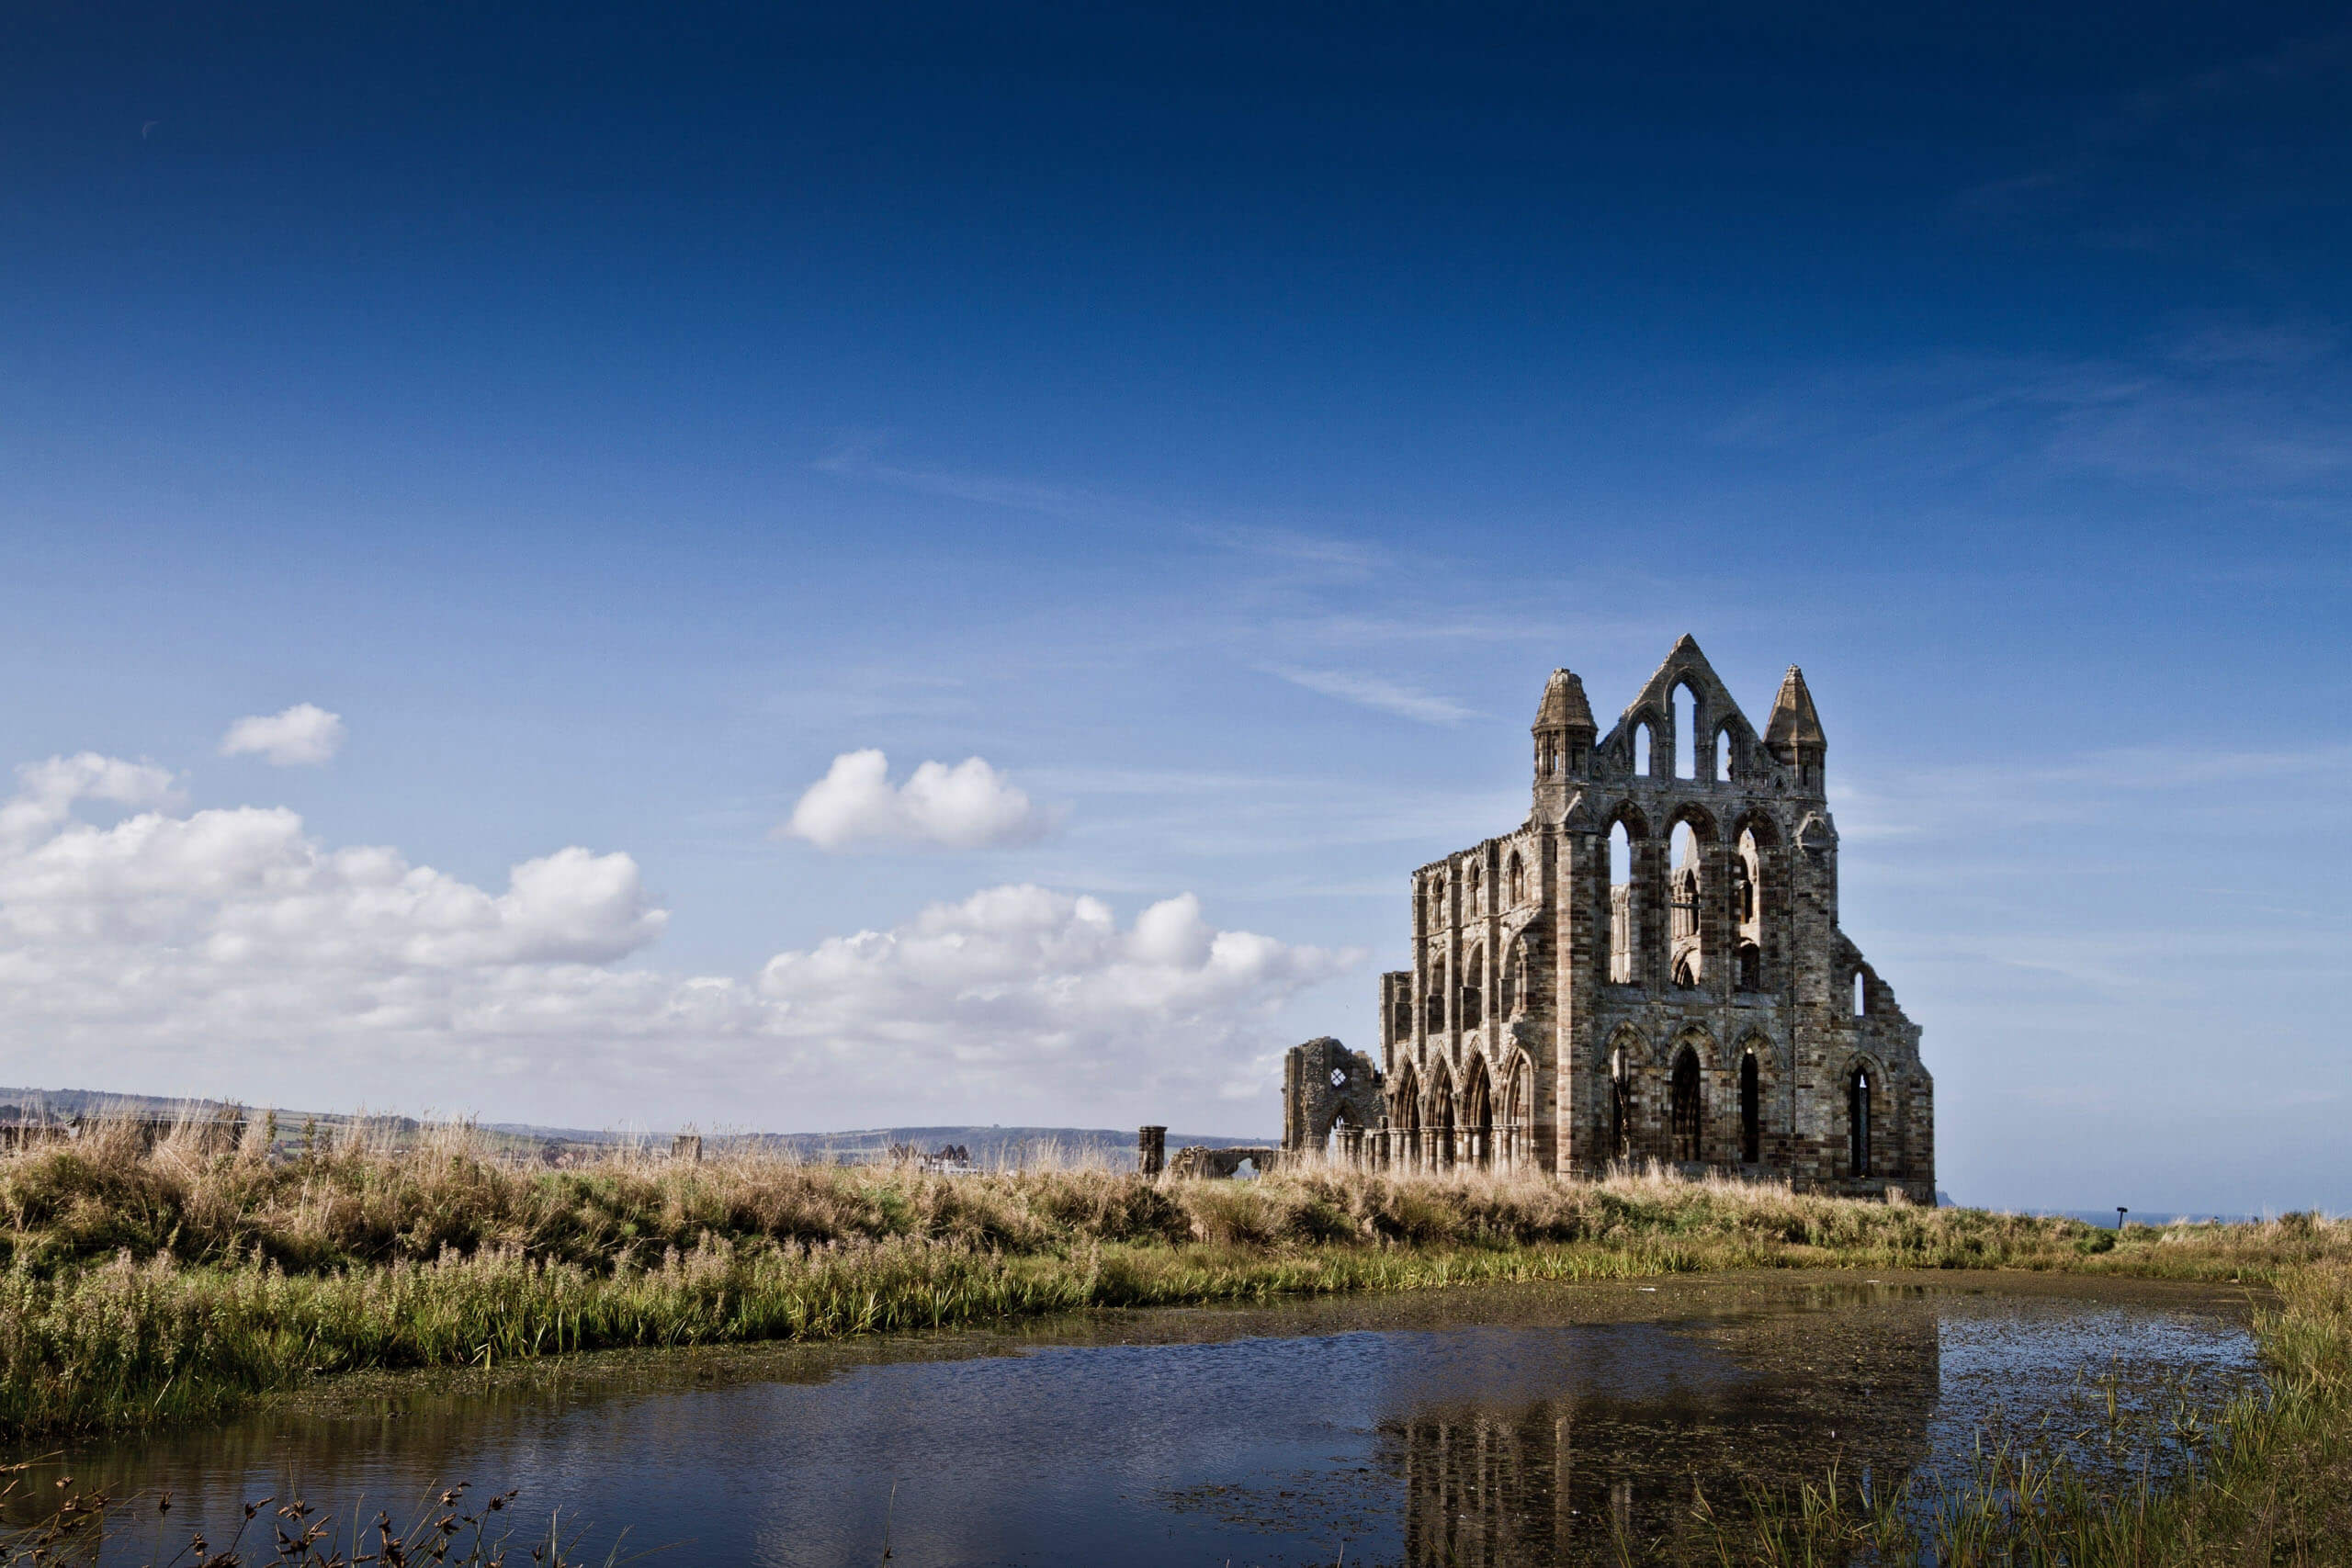 Whitby Abbey. Photo by Michael D Beckwith on Unsplash